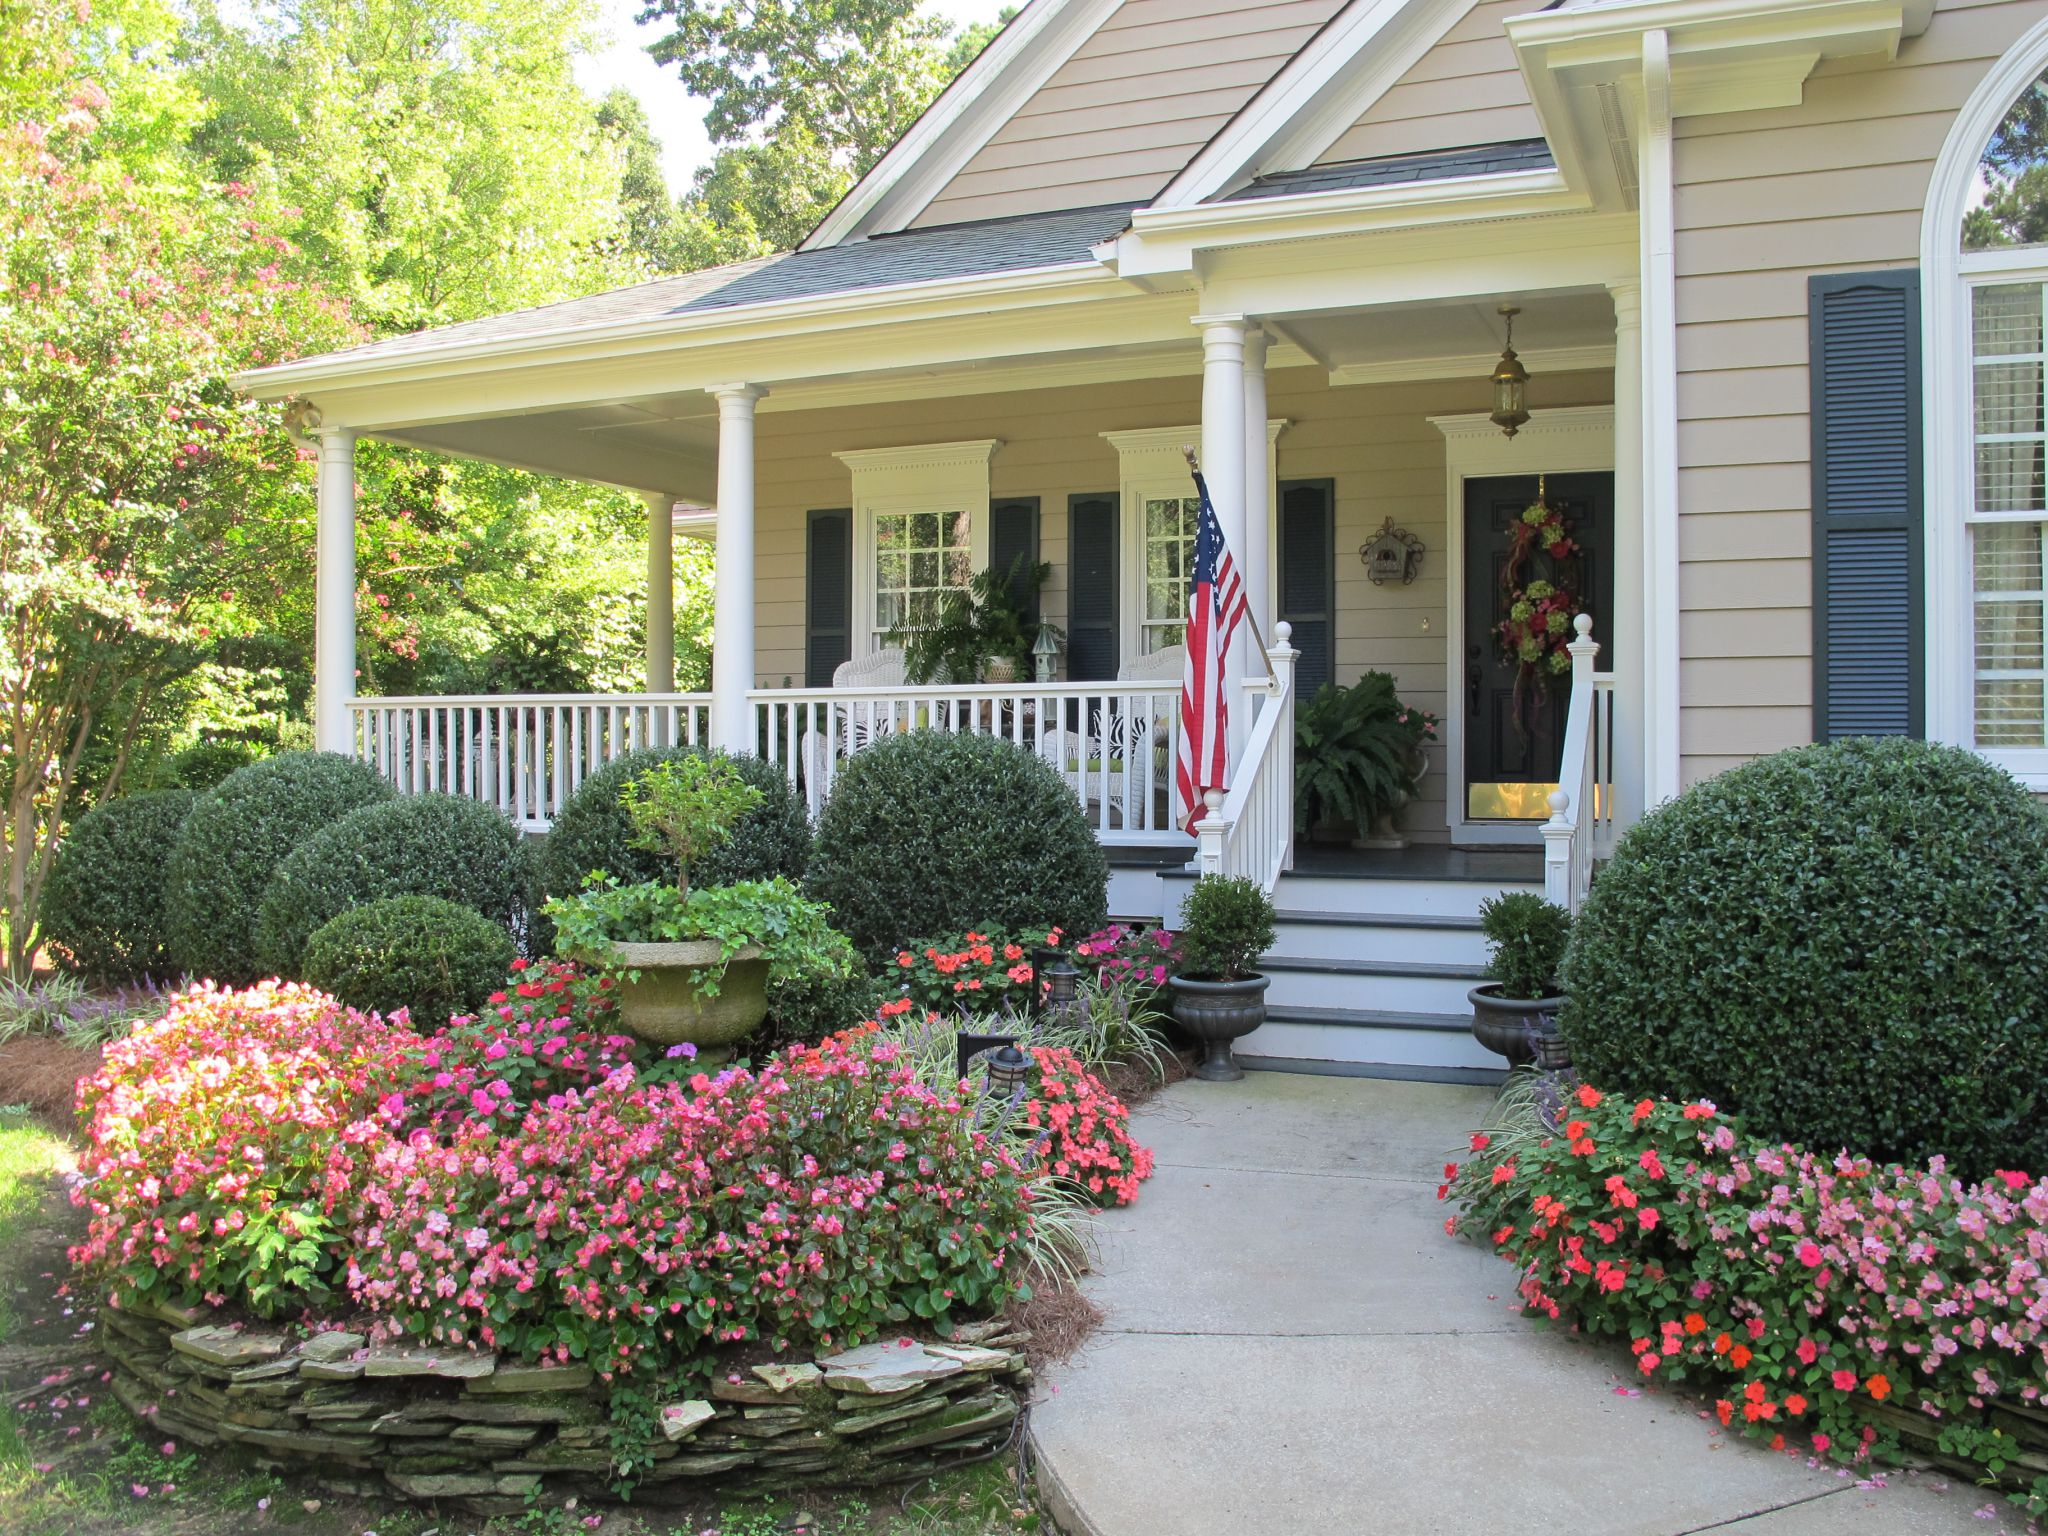 Astounding Design Of The Flower Bed Ideas With Green Grass Areas Added With Gray Road As The Curb Appeal Ideas